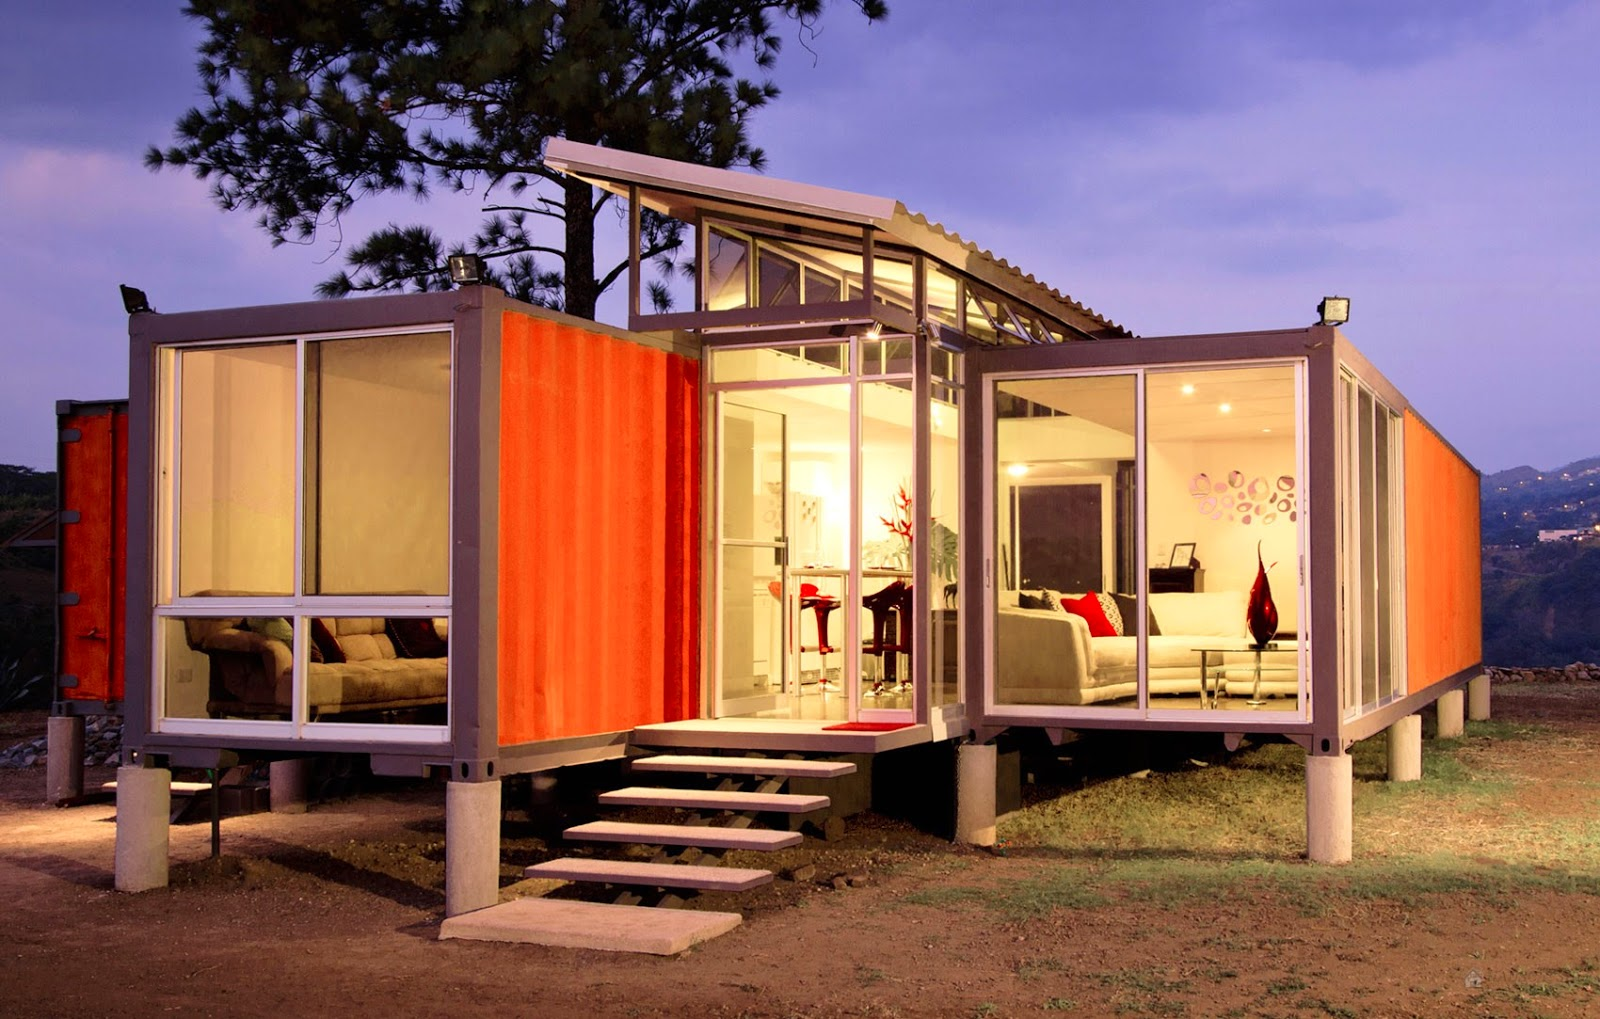 Tiny home nation top five shipping container homes - Storage containers as homes ...